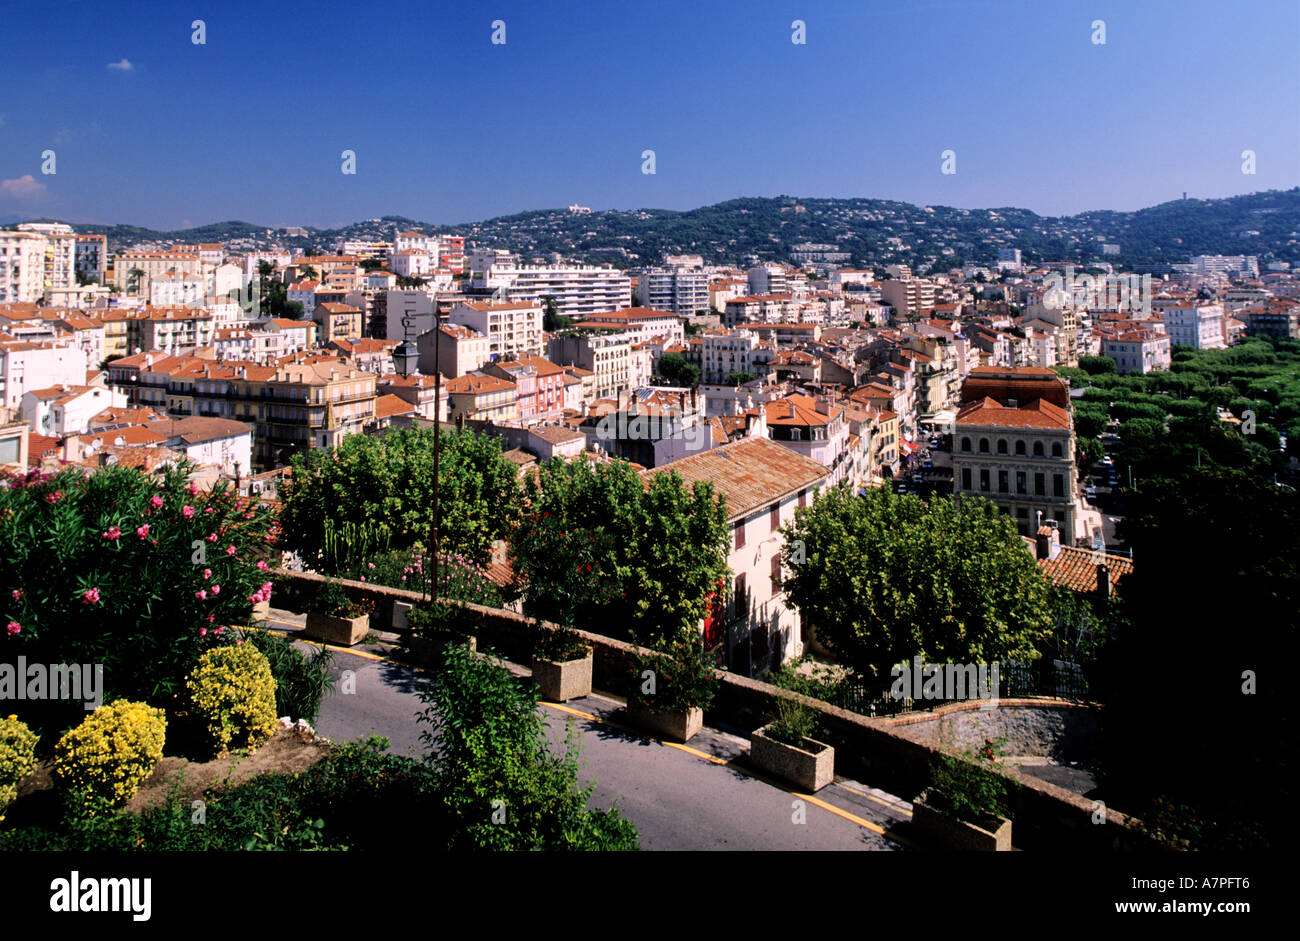 France, Alpes Maritimes, Cannes, view from the old town - Stock Image